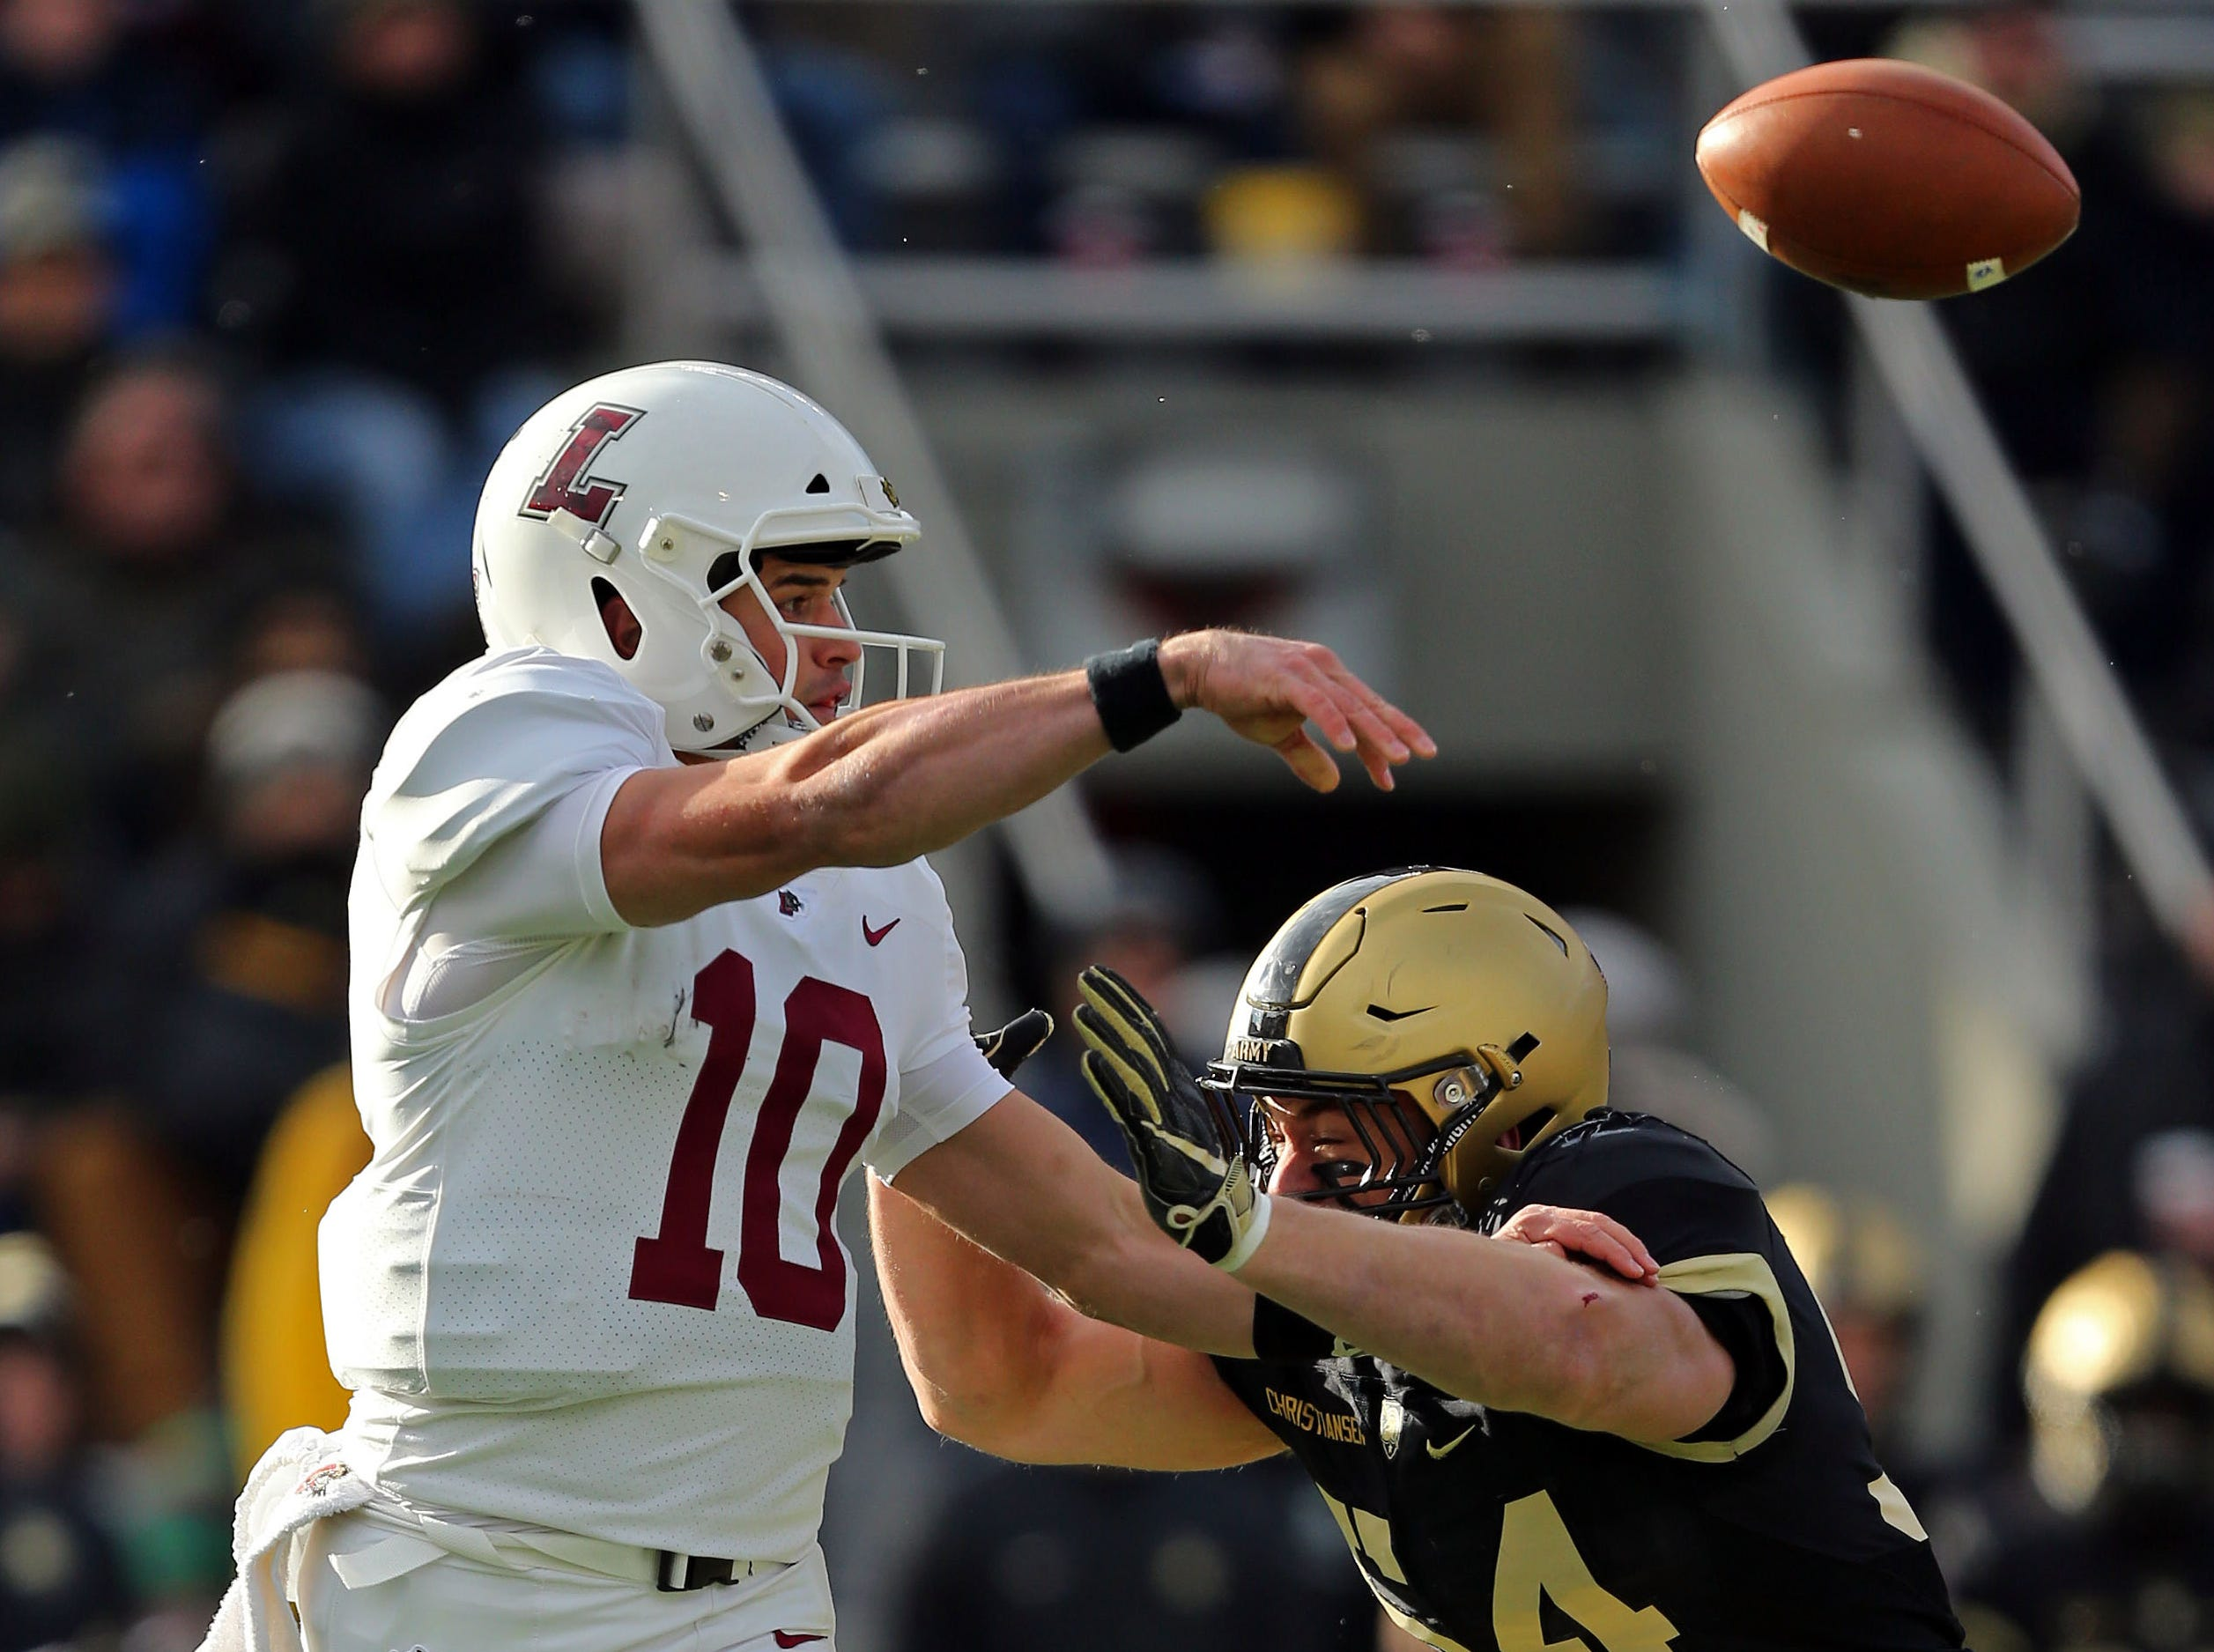 Lafayette Leopards quarterback Sean O'Malley (10) throws a pass over Army Black Knights linebacker Cole Christiansen (54) during the second half at Michie Stadium.